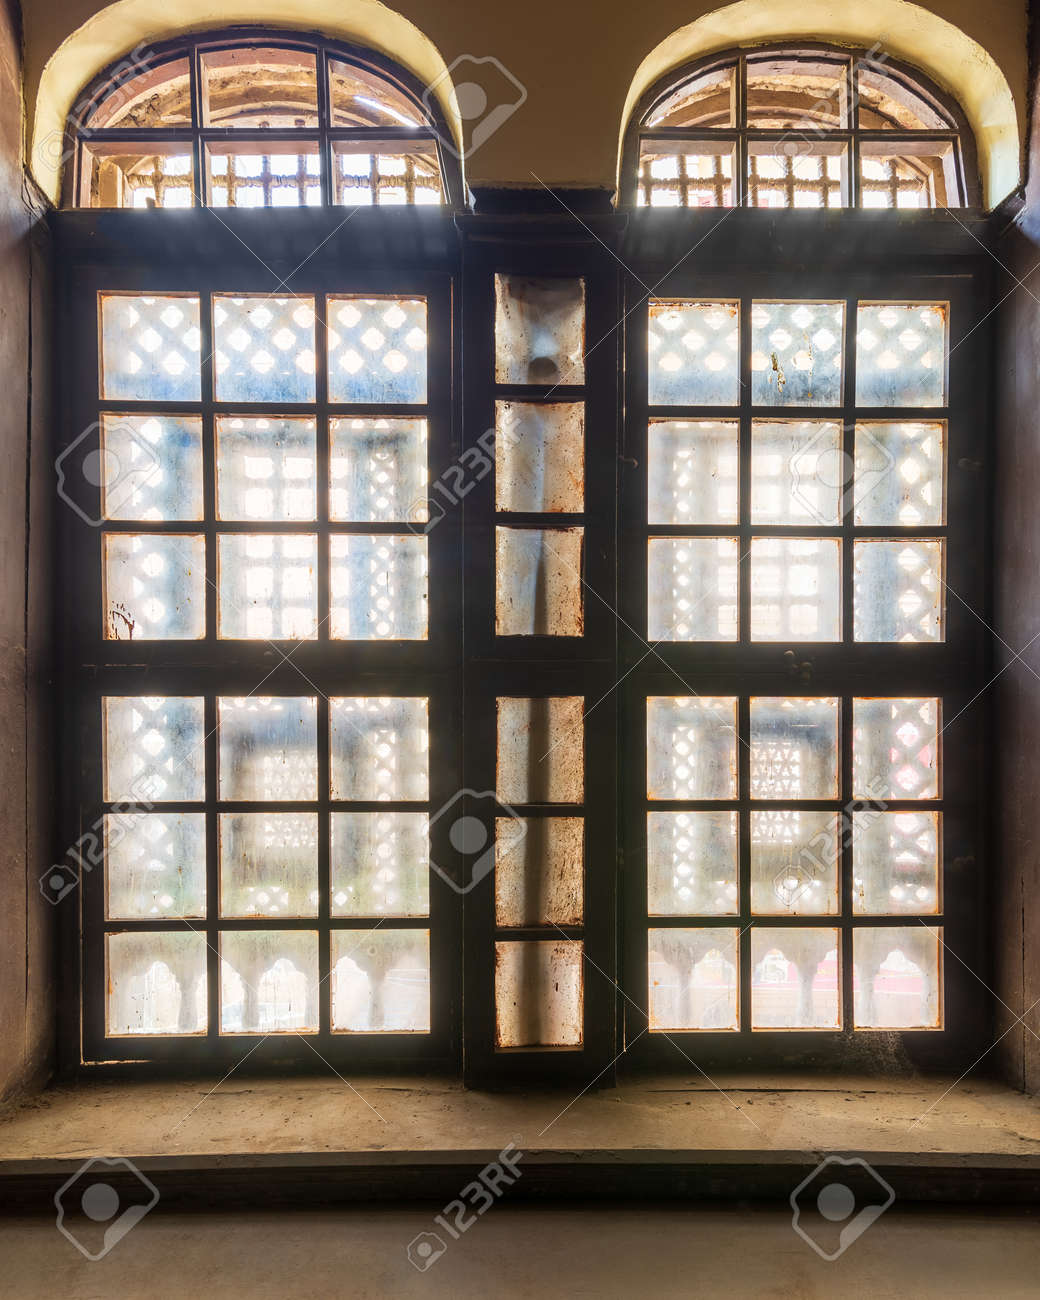 Large grunge vintage window with ornament located inside empty room - 151743132